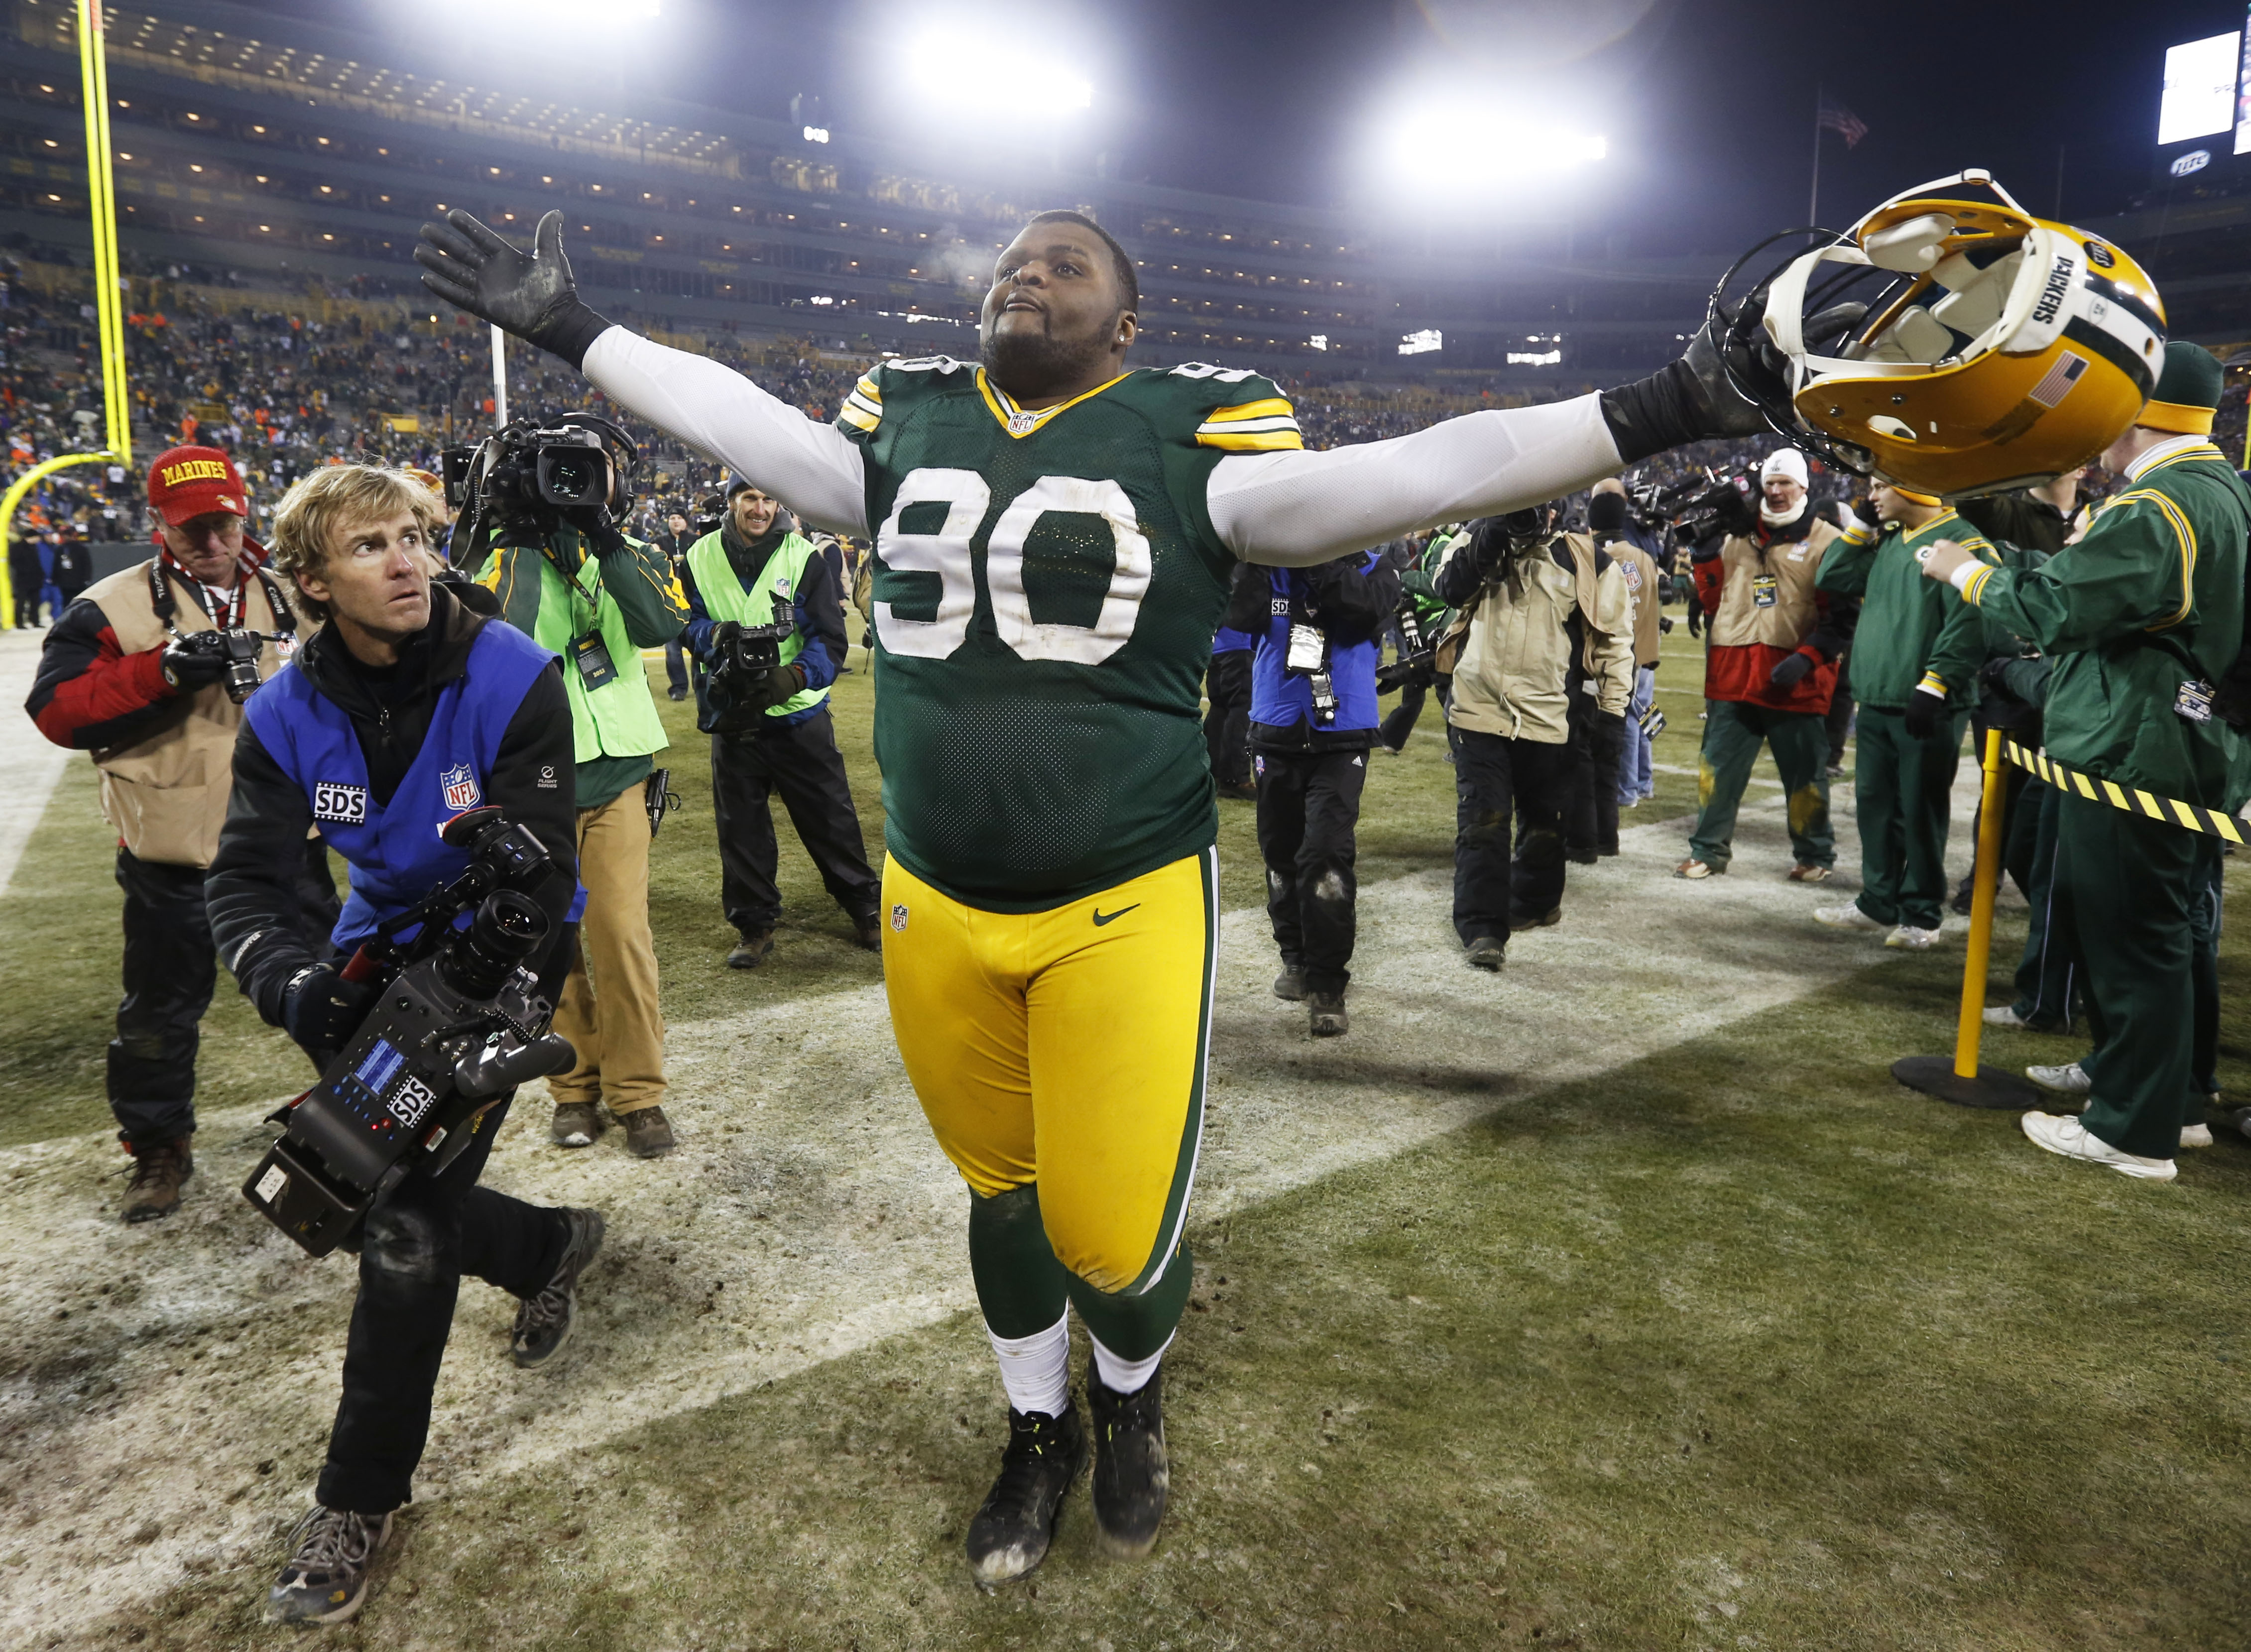 FILE - In this January, 2013 file photo, Green Bay Packers nose tackle B.J. Raji (90) celebrates after an NFL wild card playoff football game against the Minnesota Vikings in Green Bay, Wis. Veterans Julius Peppers and Raji are back to fortify the Packers